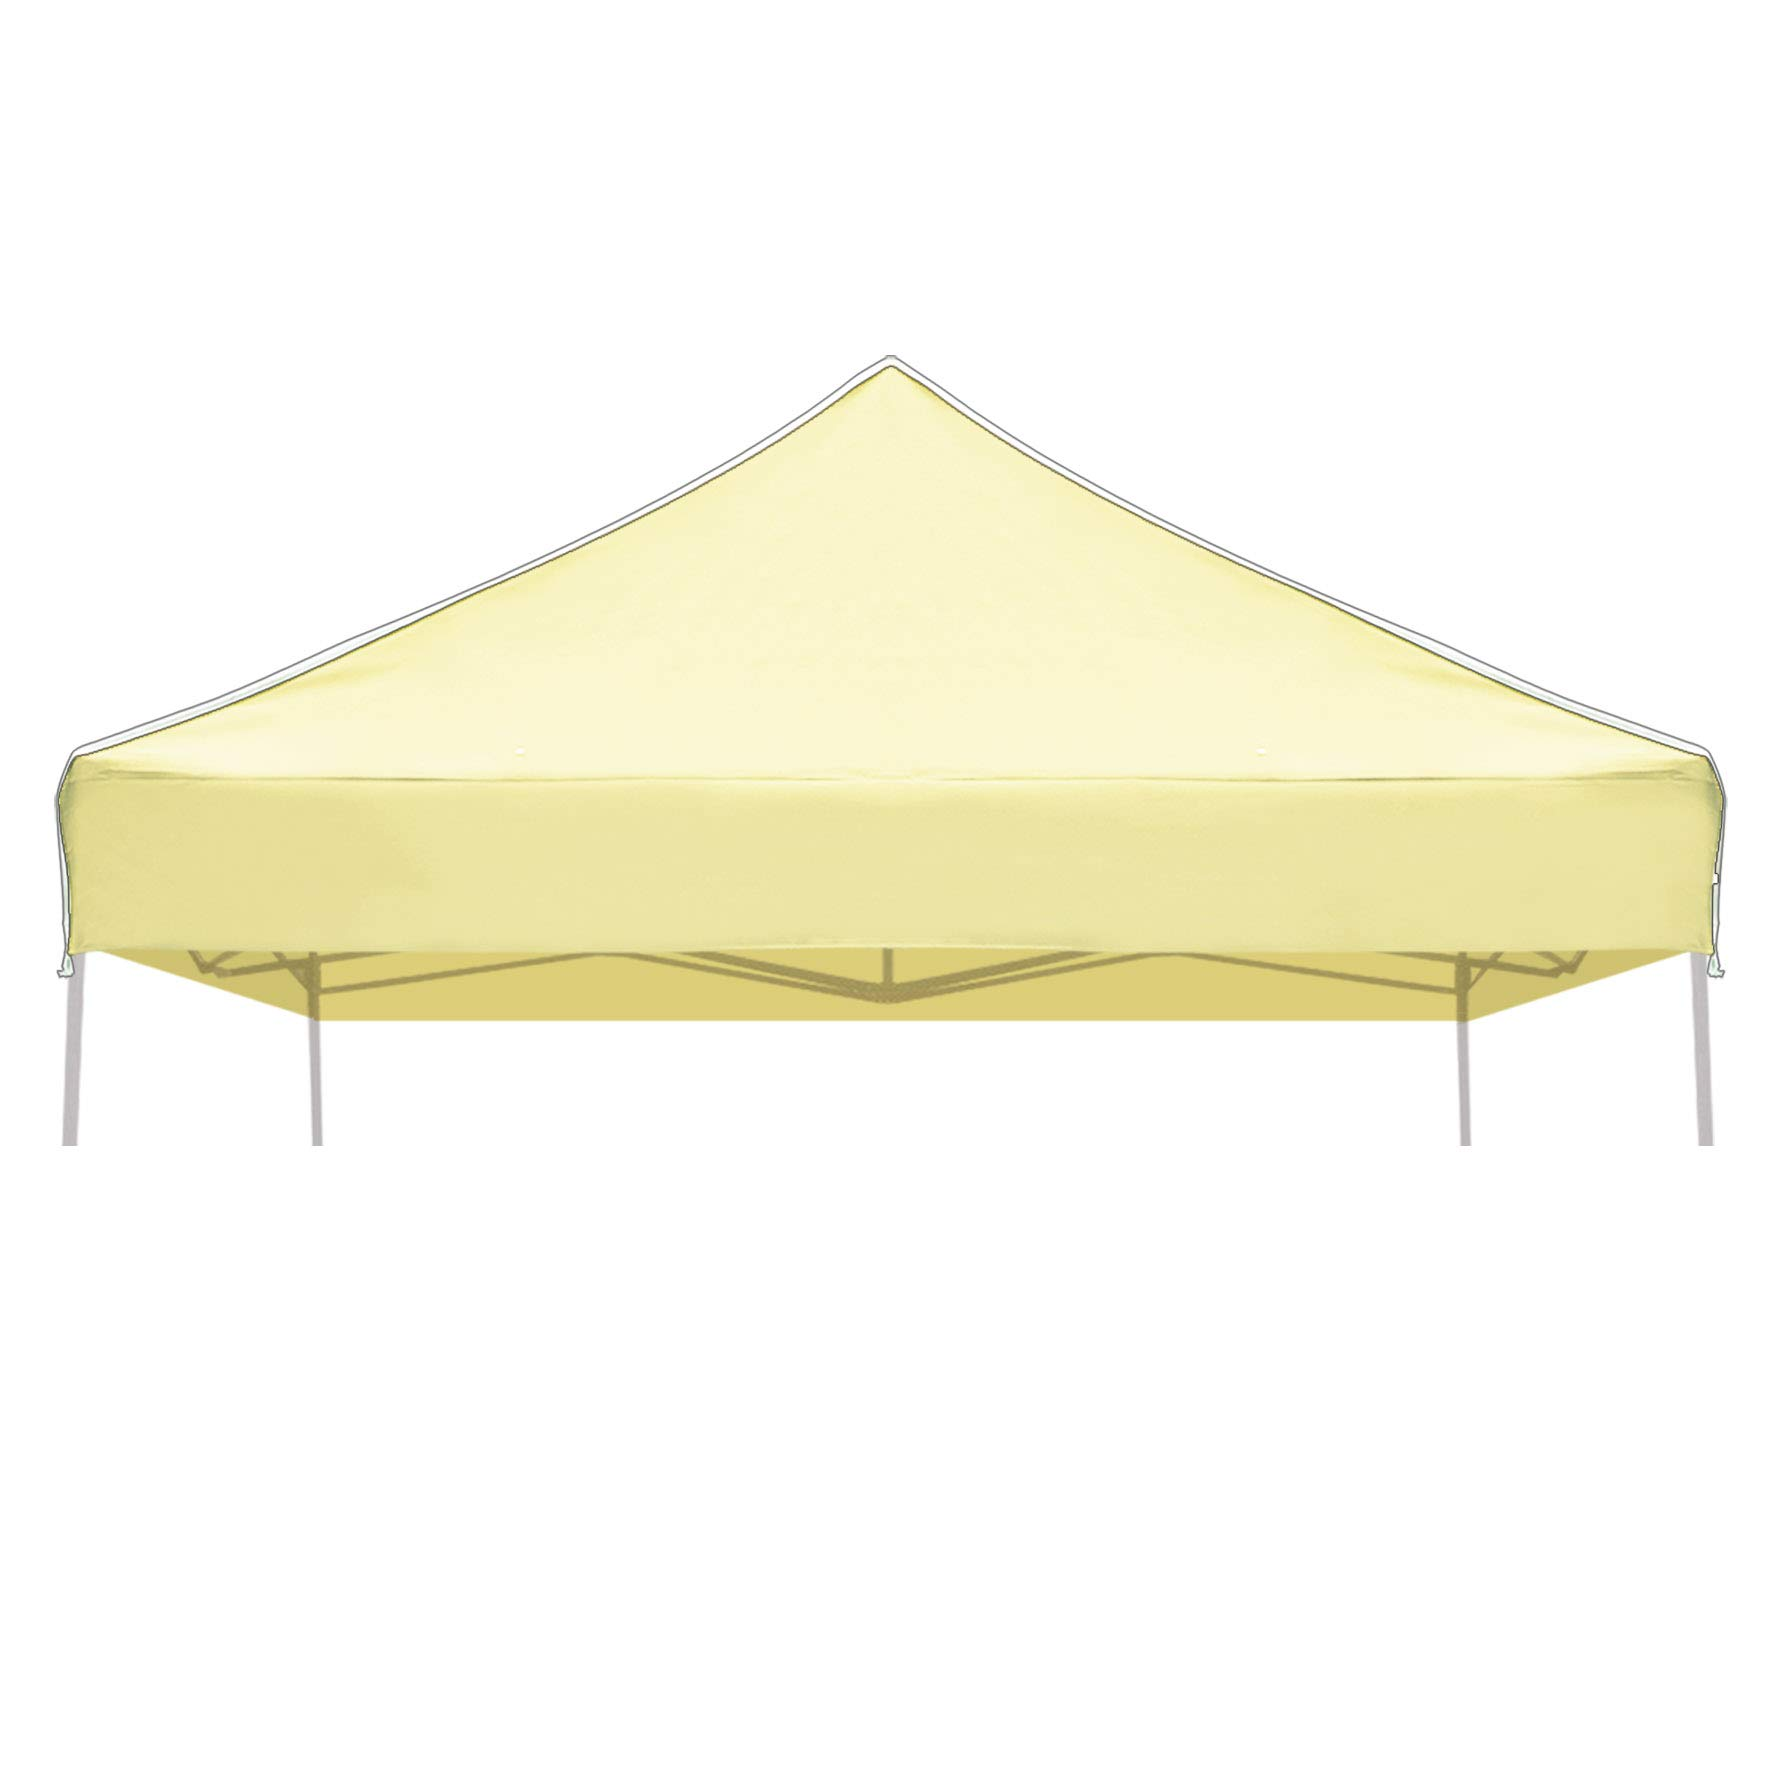 Strong Camel Ez Pop Up Canopy Replacement Top Instant 10 X10 Gazebo Ez Canopy Cover Patio Pavilion Sunshade Plyester Beige Color Buy Online In India At Desertcart In Productid 42521939